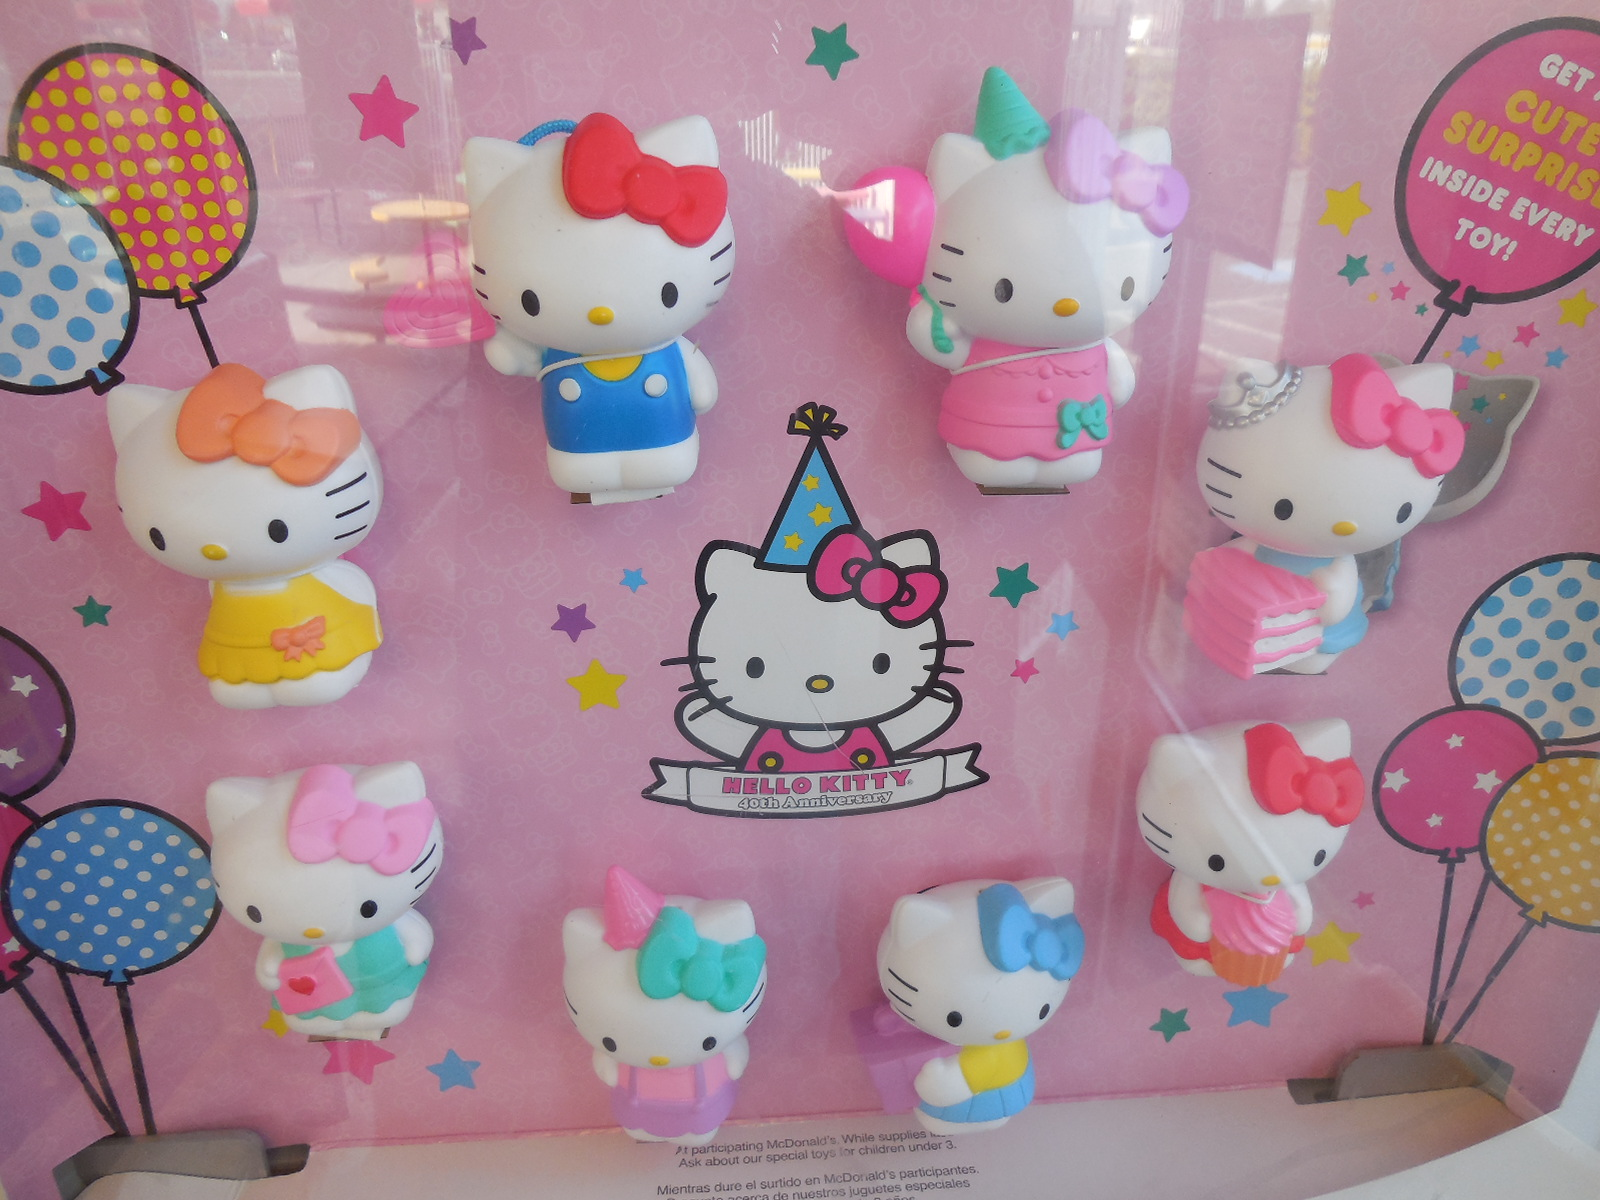 Hello Kitty 40th anniversary McDonald's Happy Meal toys